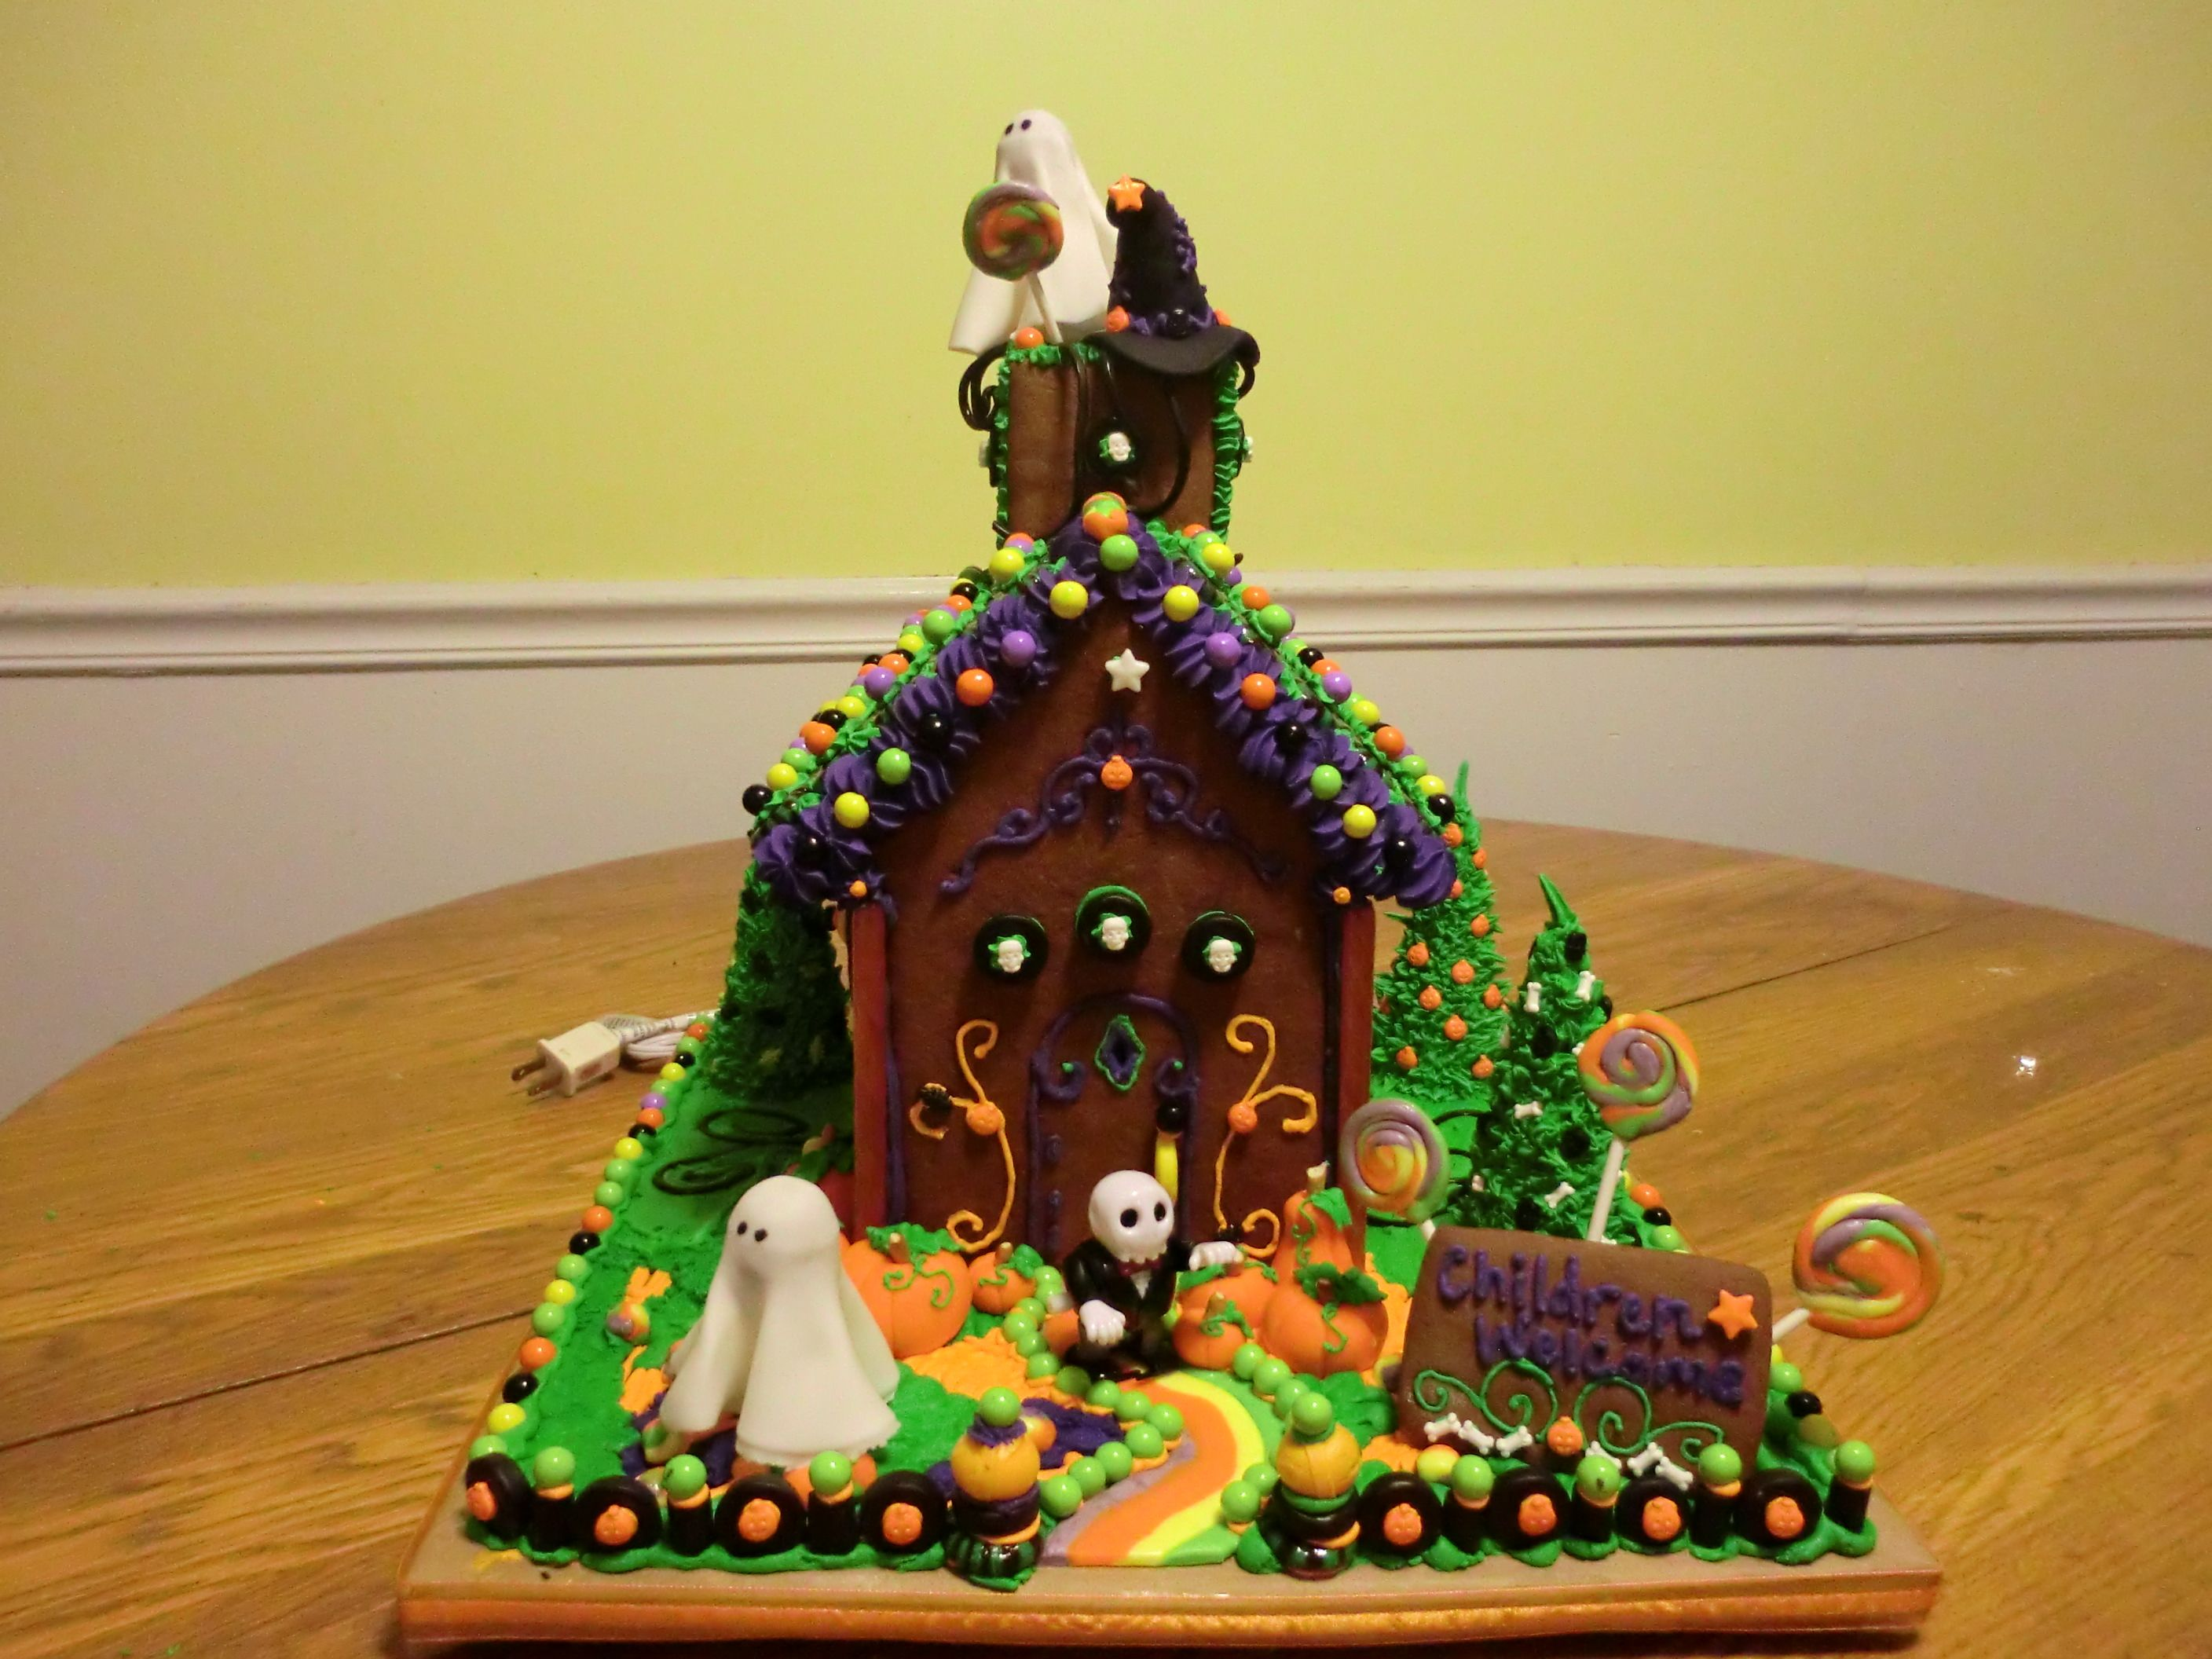 Ideas for a gingerbread house - 17 Best Images About Haunted Gingerbread Houses On Pinterest Gingerbread Houses Monster House And Mansions